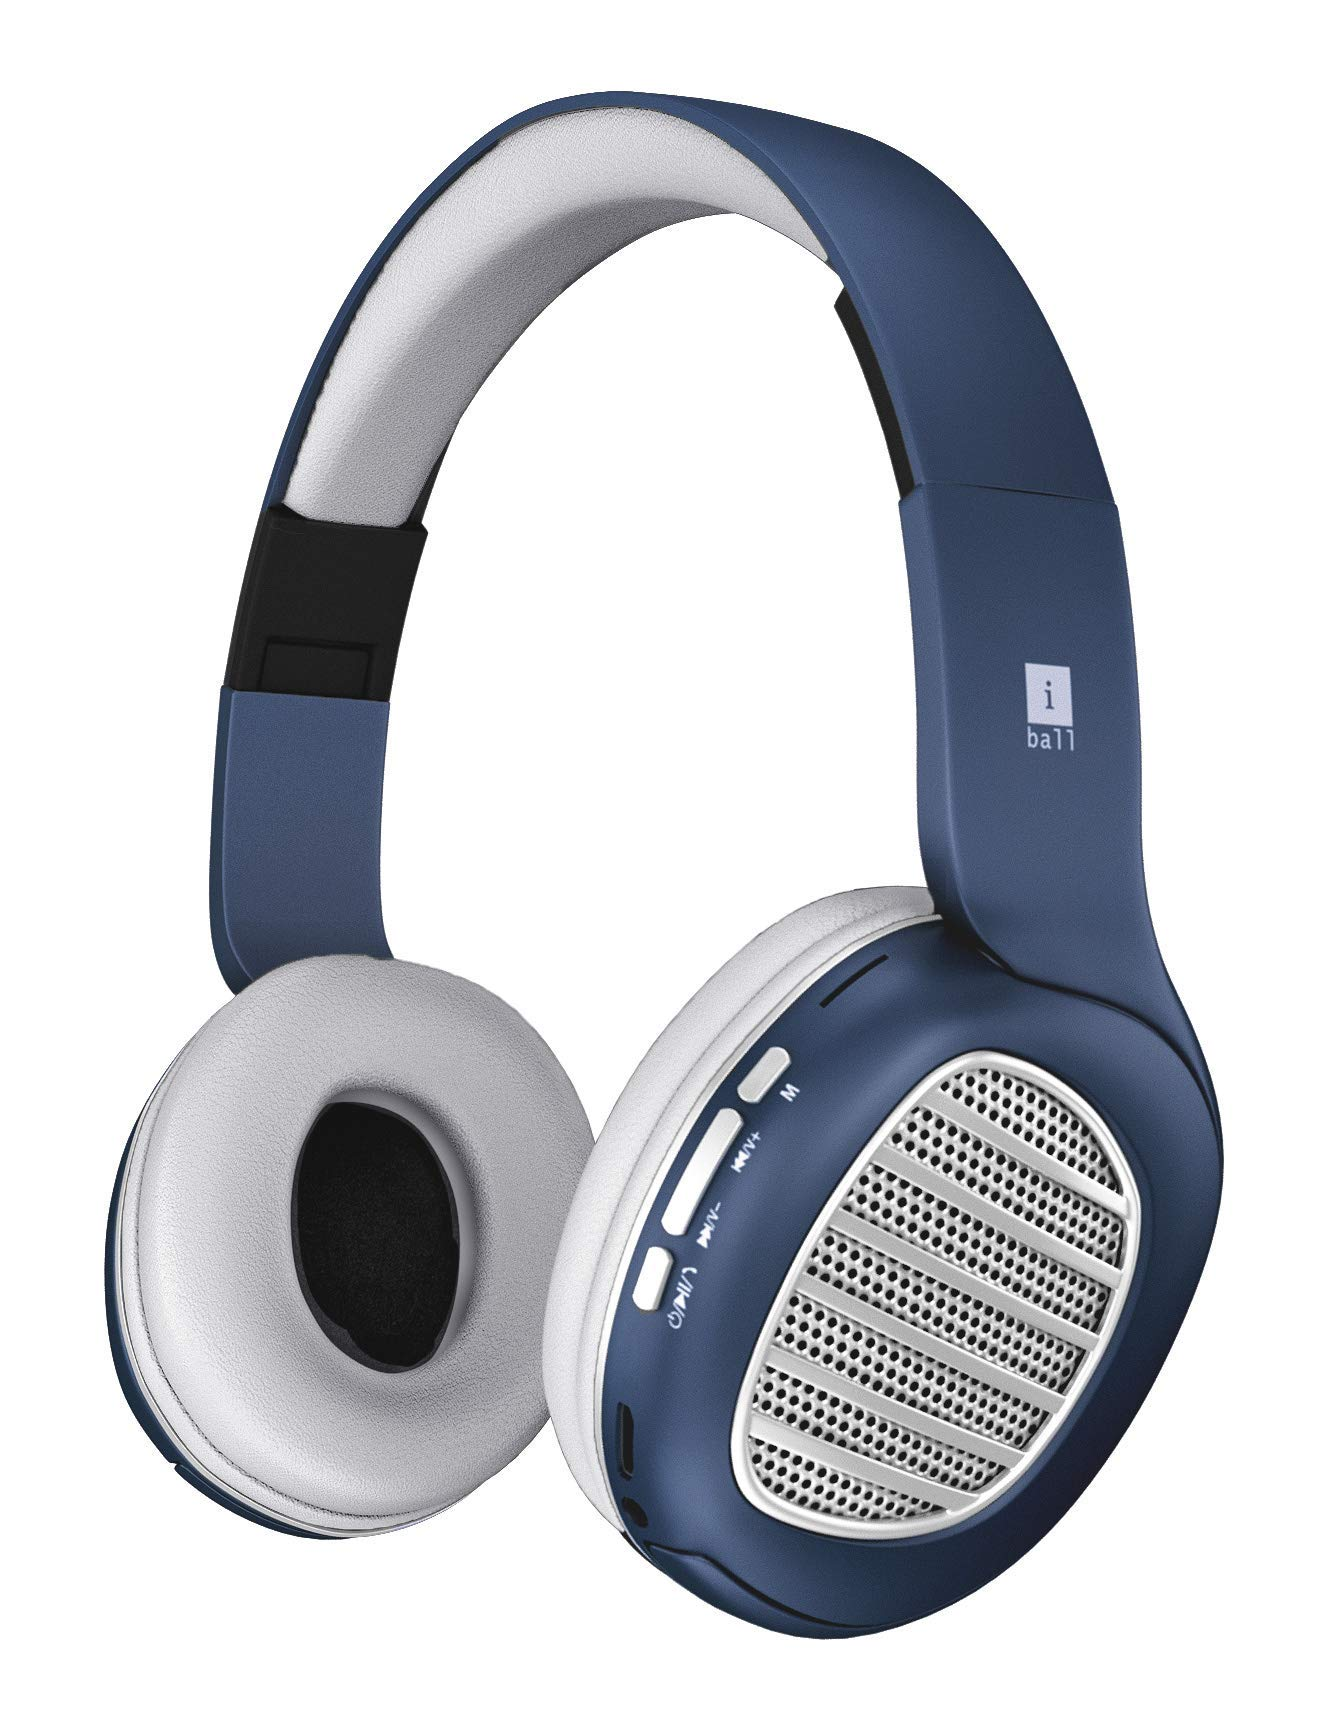 Amazon price history for (Renewed) iBall Decibel BT01 Smart Headset with Alexa Enabled (Blue, White and Silver)